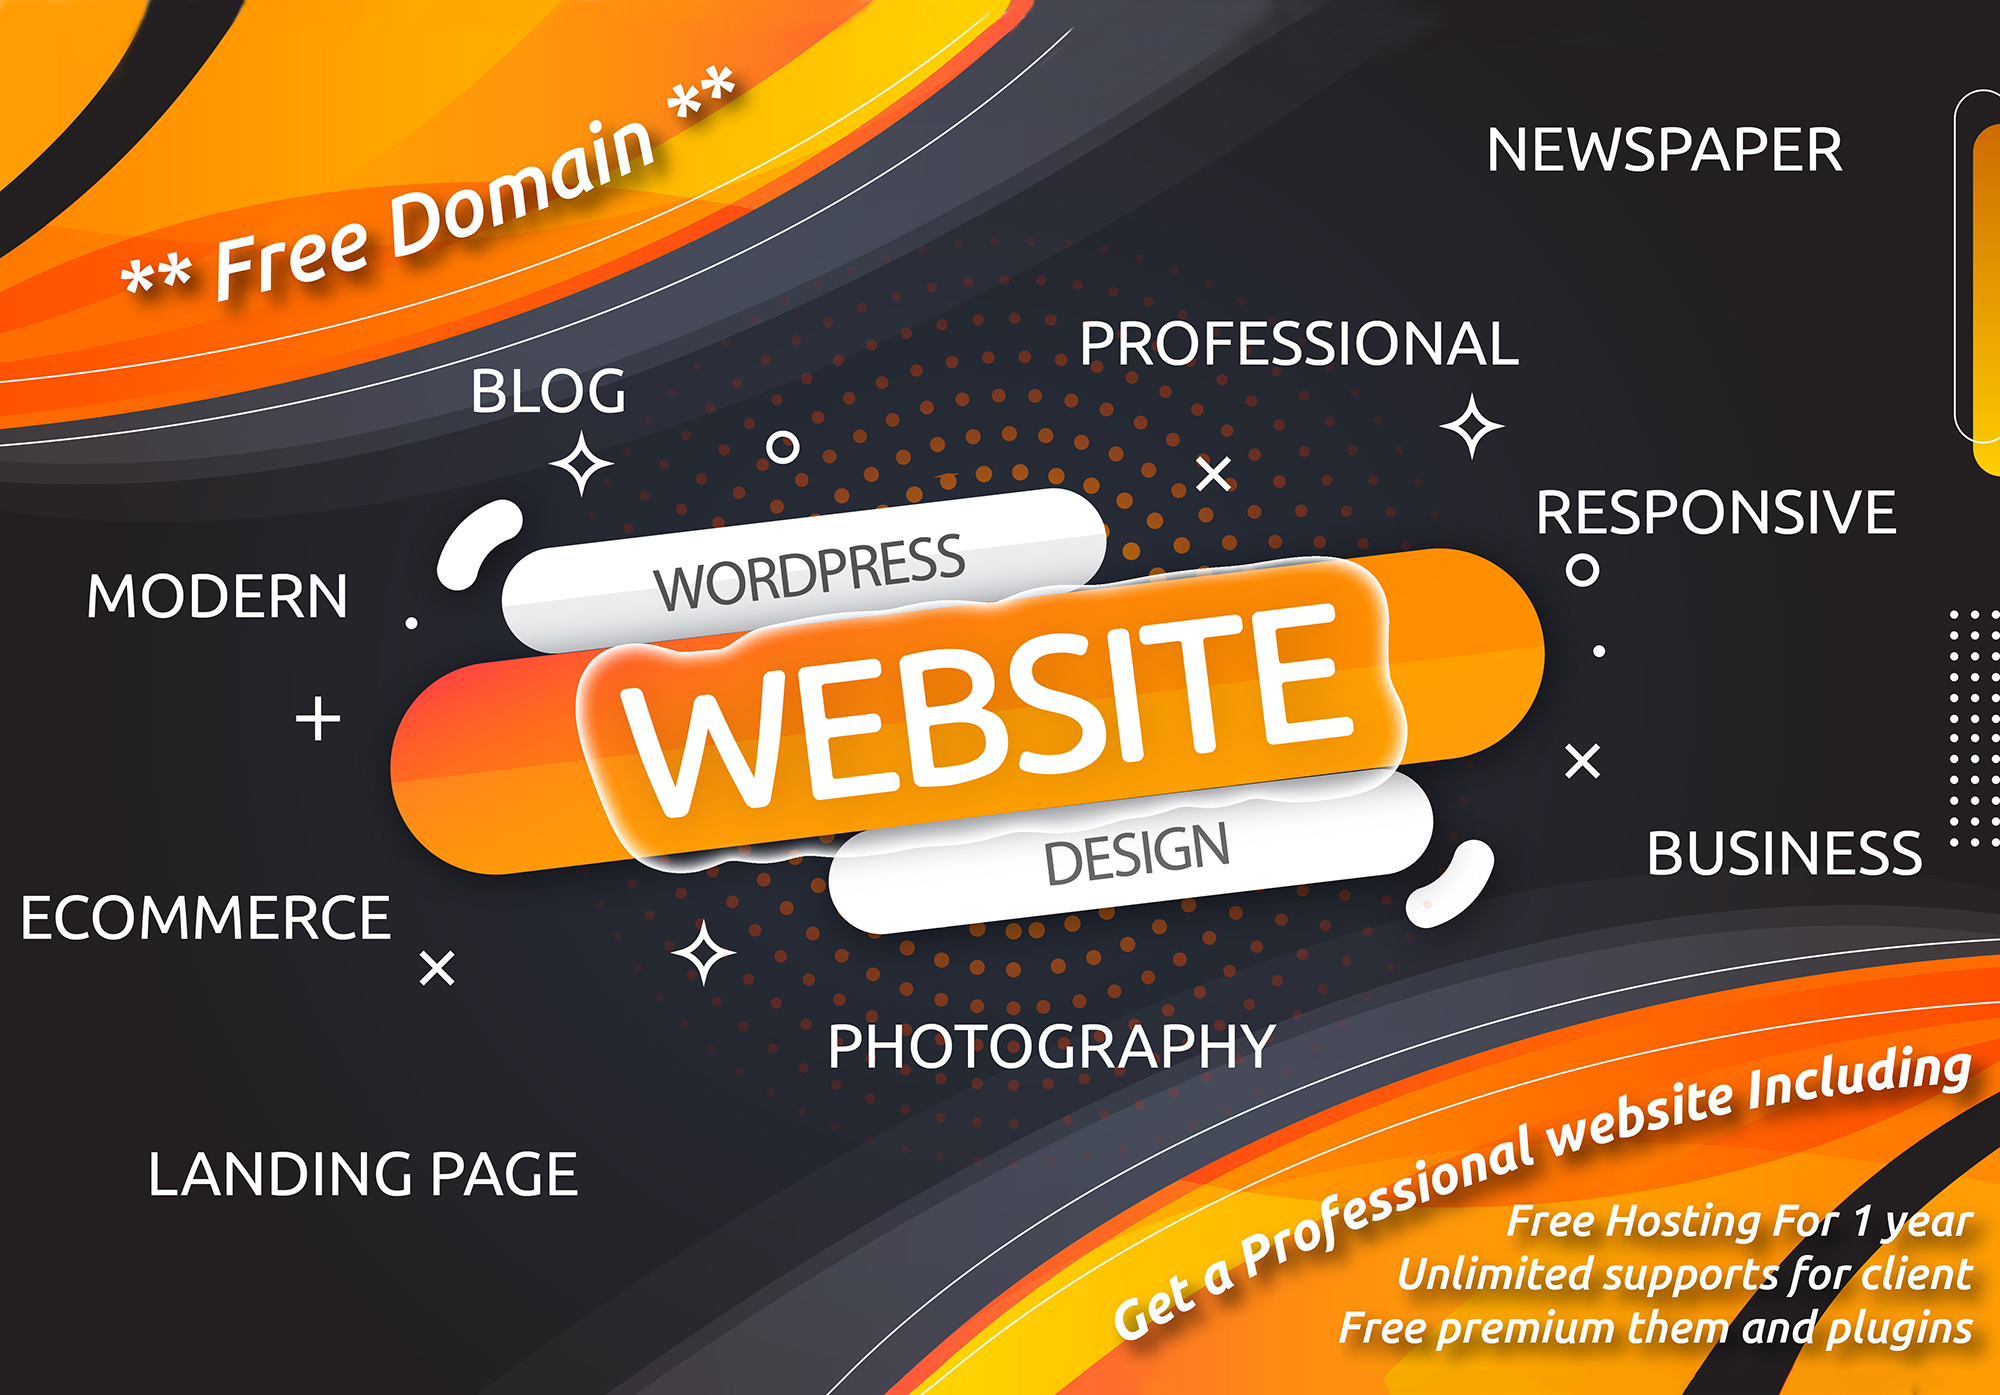 I will build a responsive high quality wordpress website design